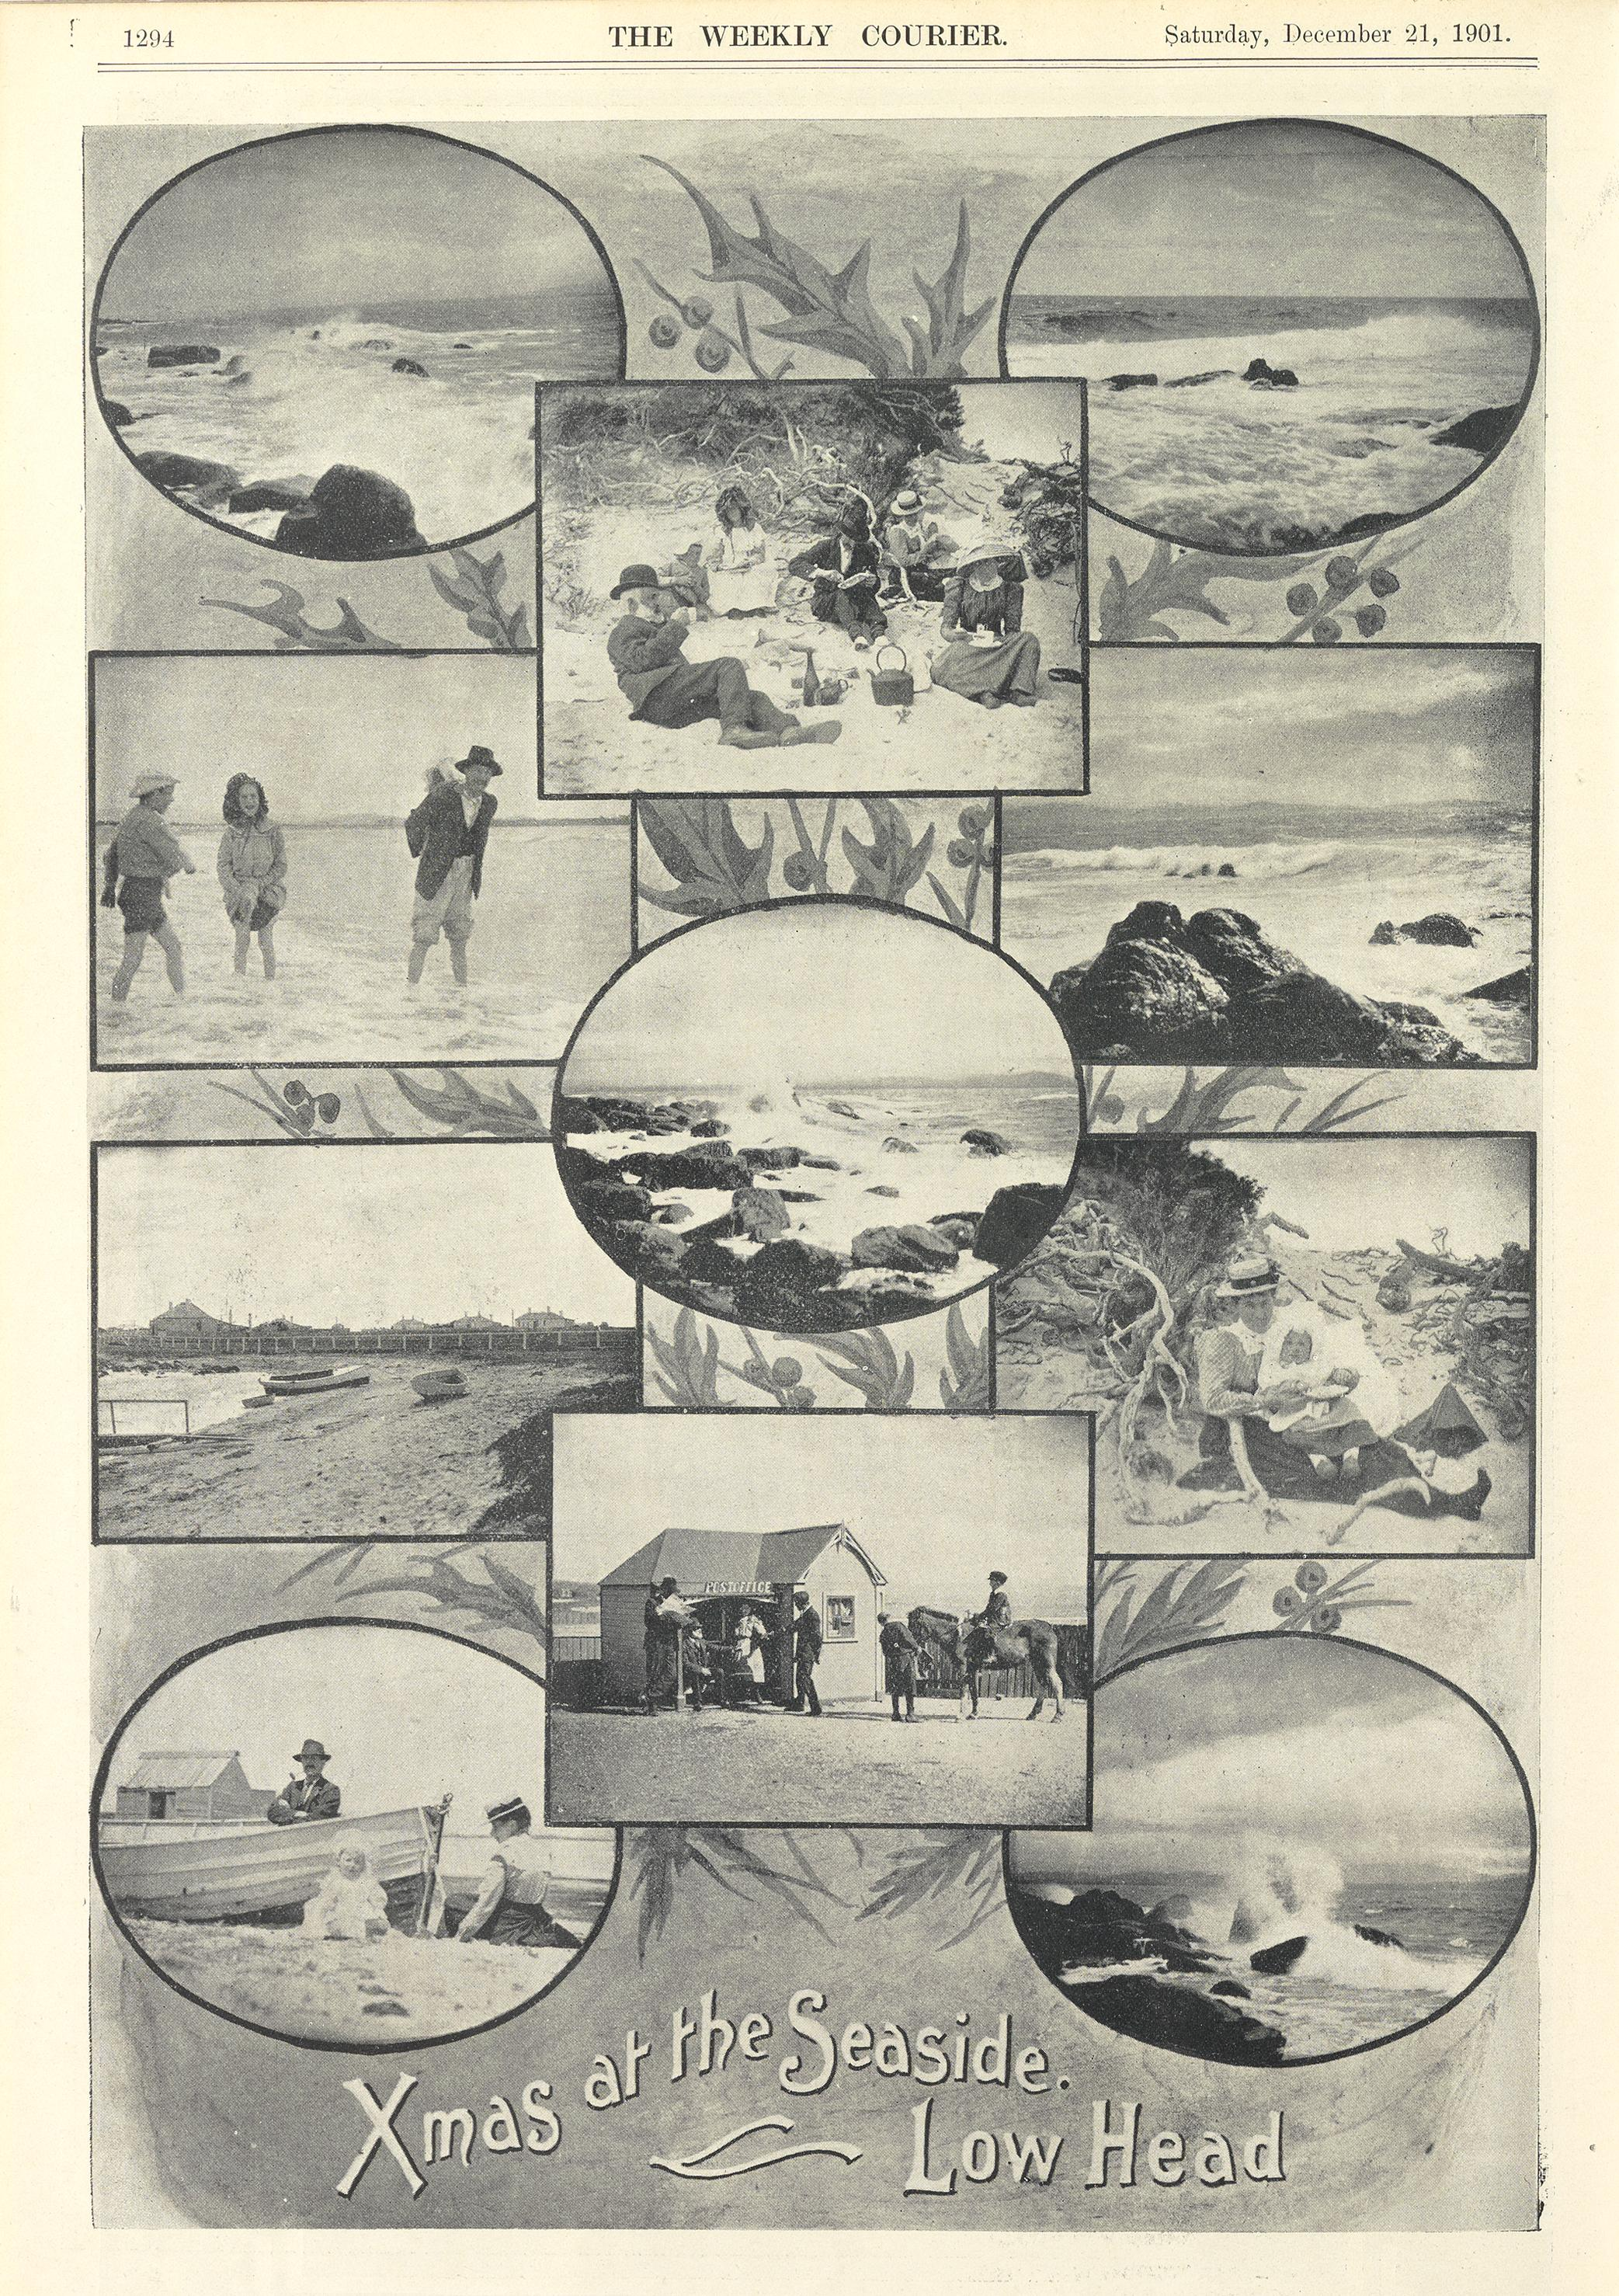 Xmas at the seaside, Low Head (Weekly Courier Newspaper - 21 Dec 1901, p1294)